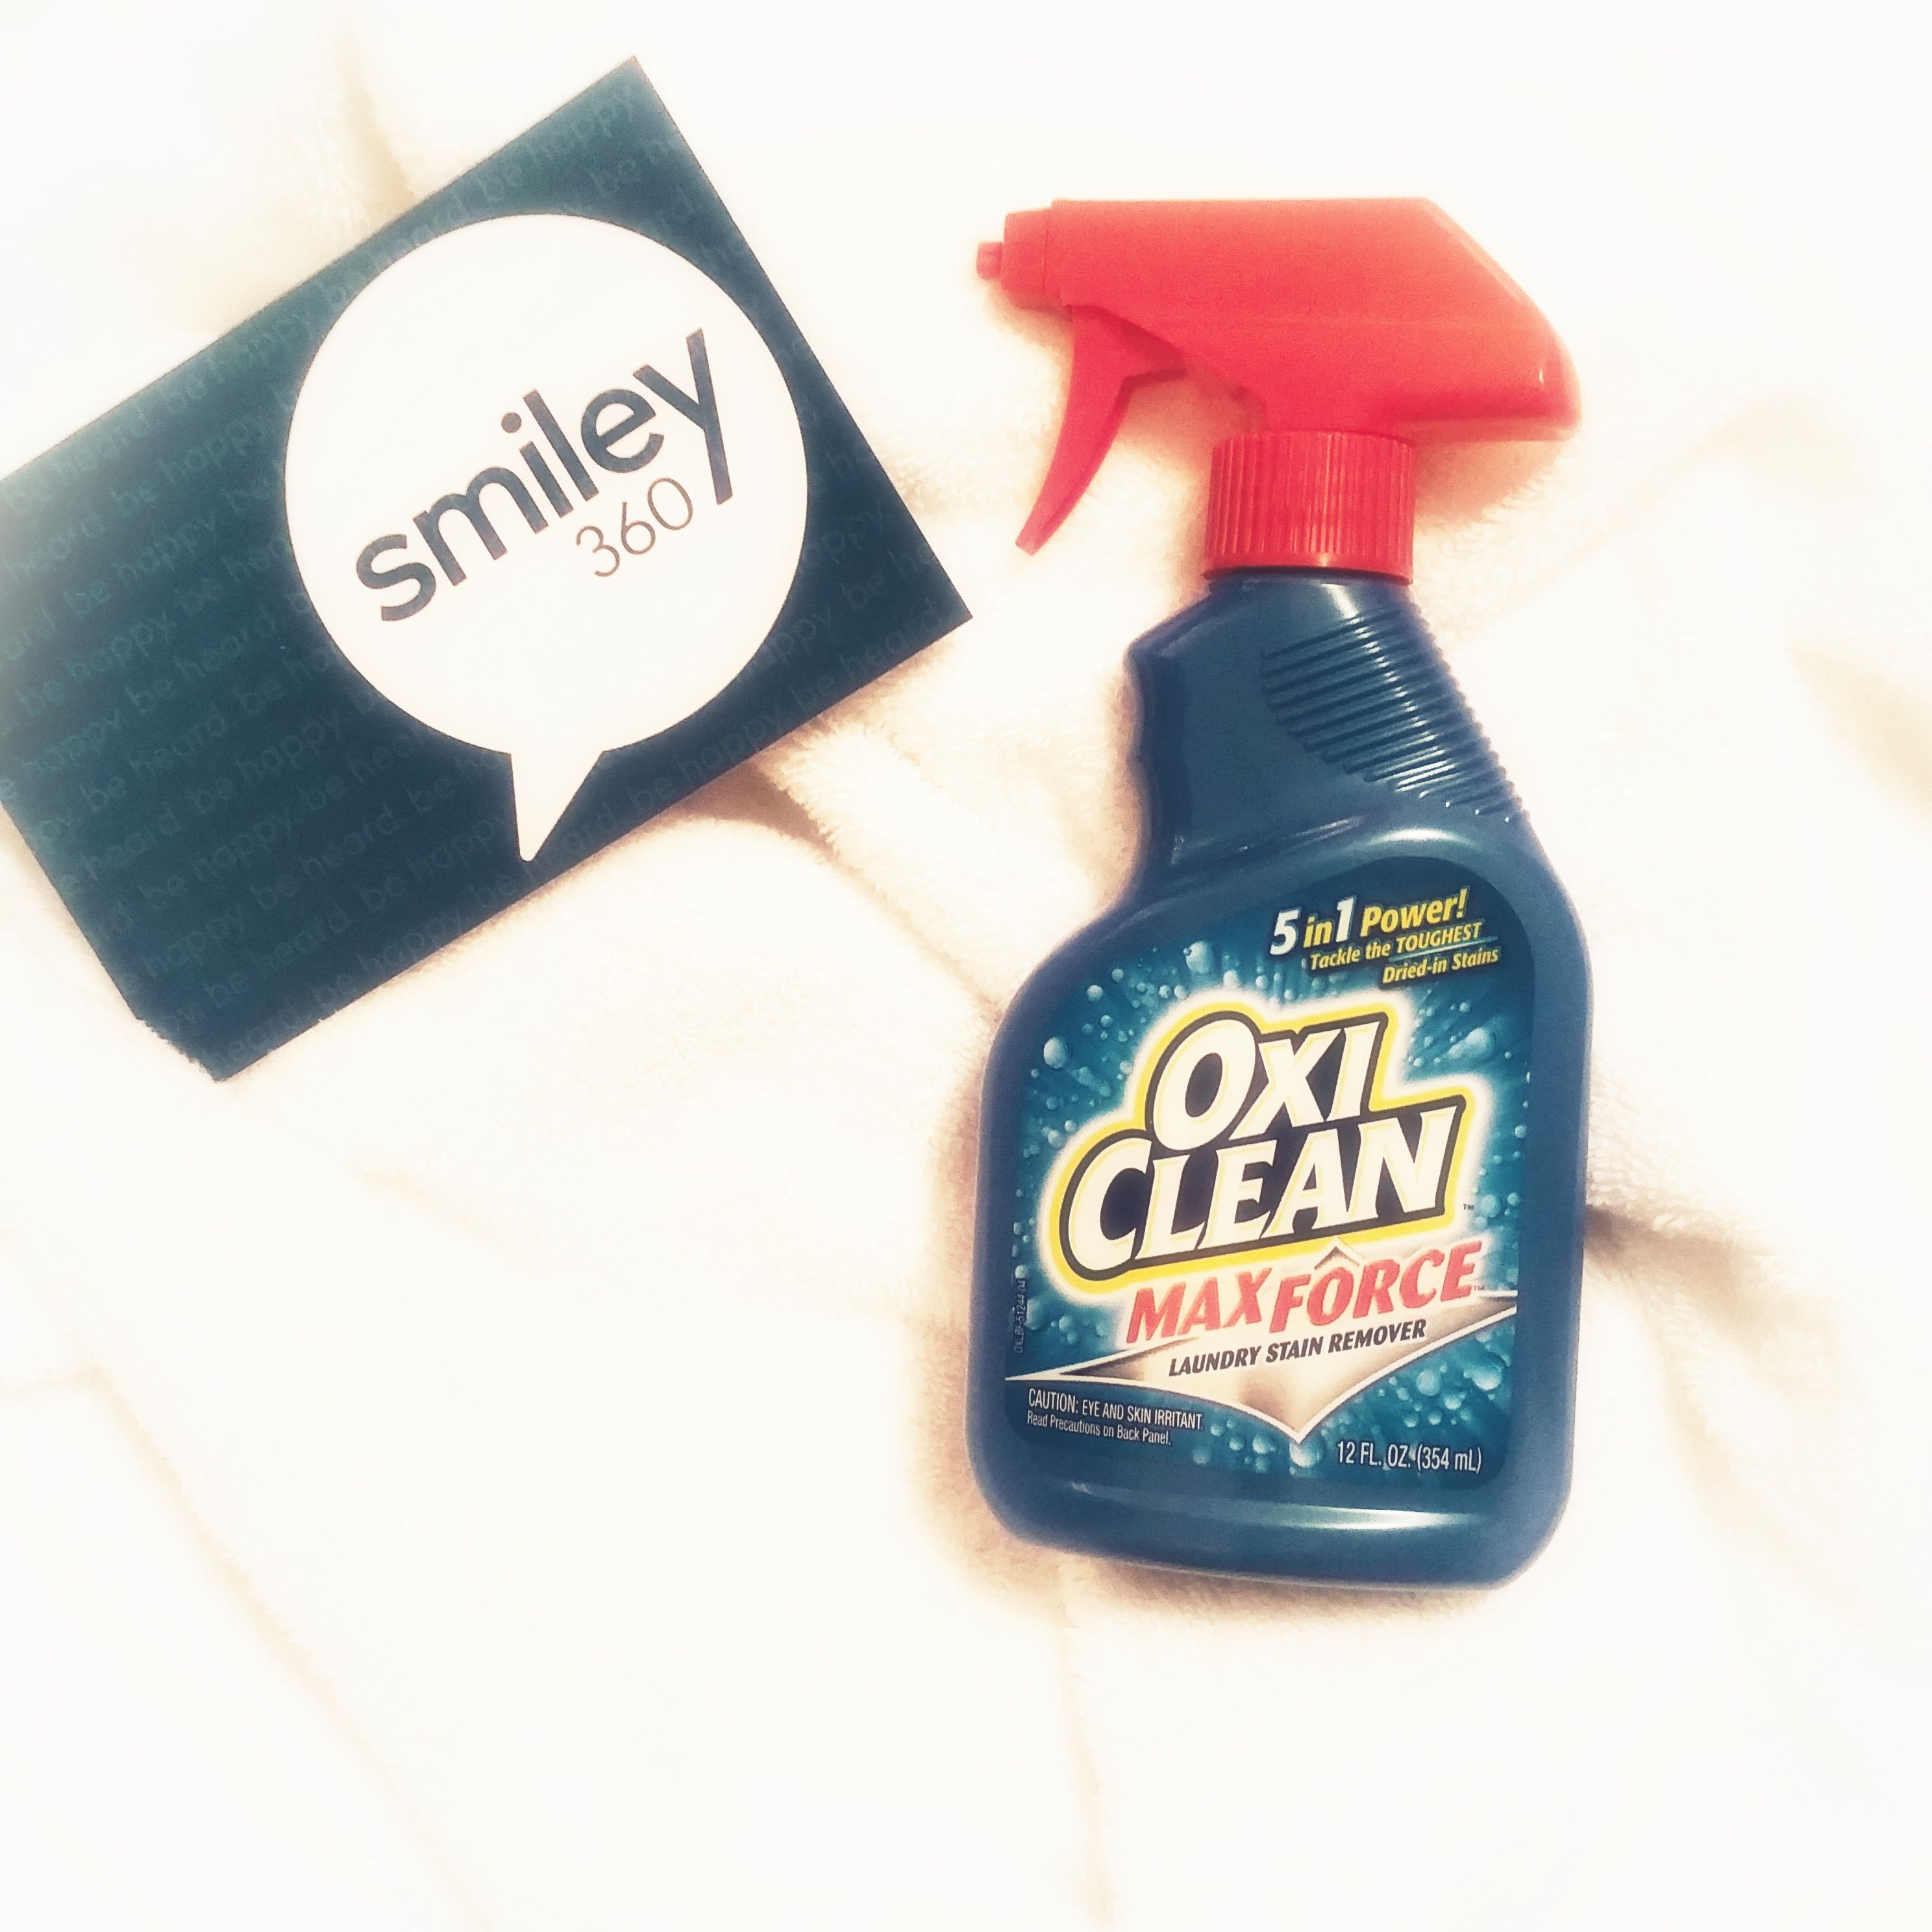 Oxyclean Maxforce Received This Product From Smiley360 To Sample